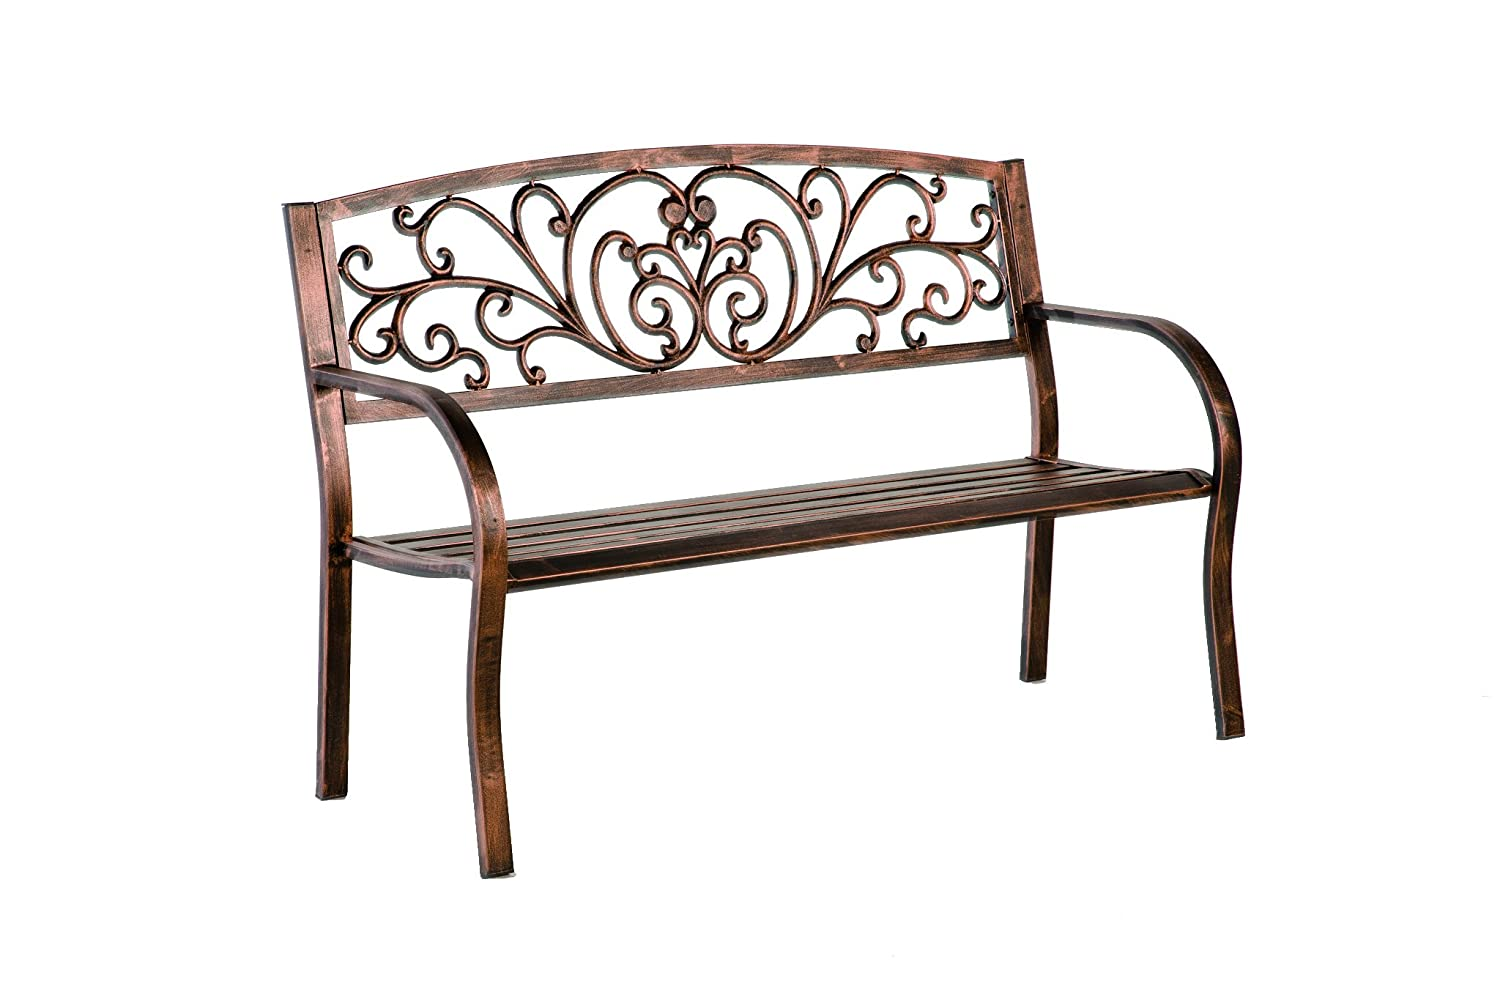 Lovely Amazon.com : Plow U0026 Hearth Blooming Patio Garden Bench Park Yard Outdoor  Furniture, Iron Metal Frame, Elegant Bronze Finish, Sturdy Durable  Construction, ... Part 23